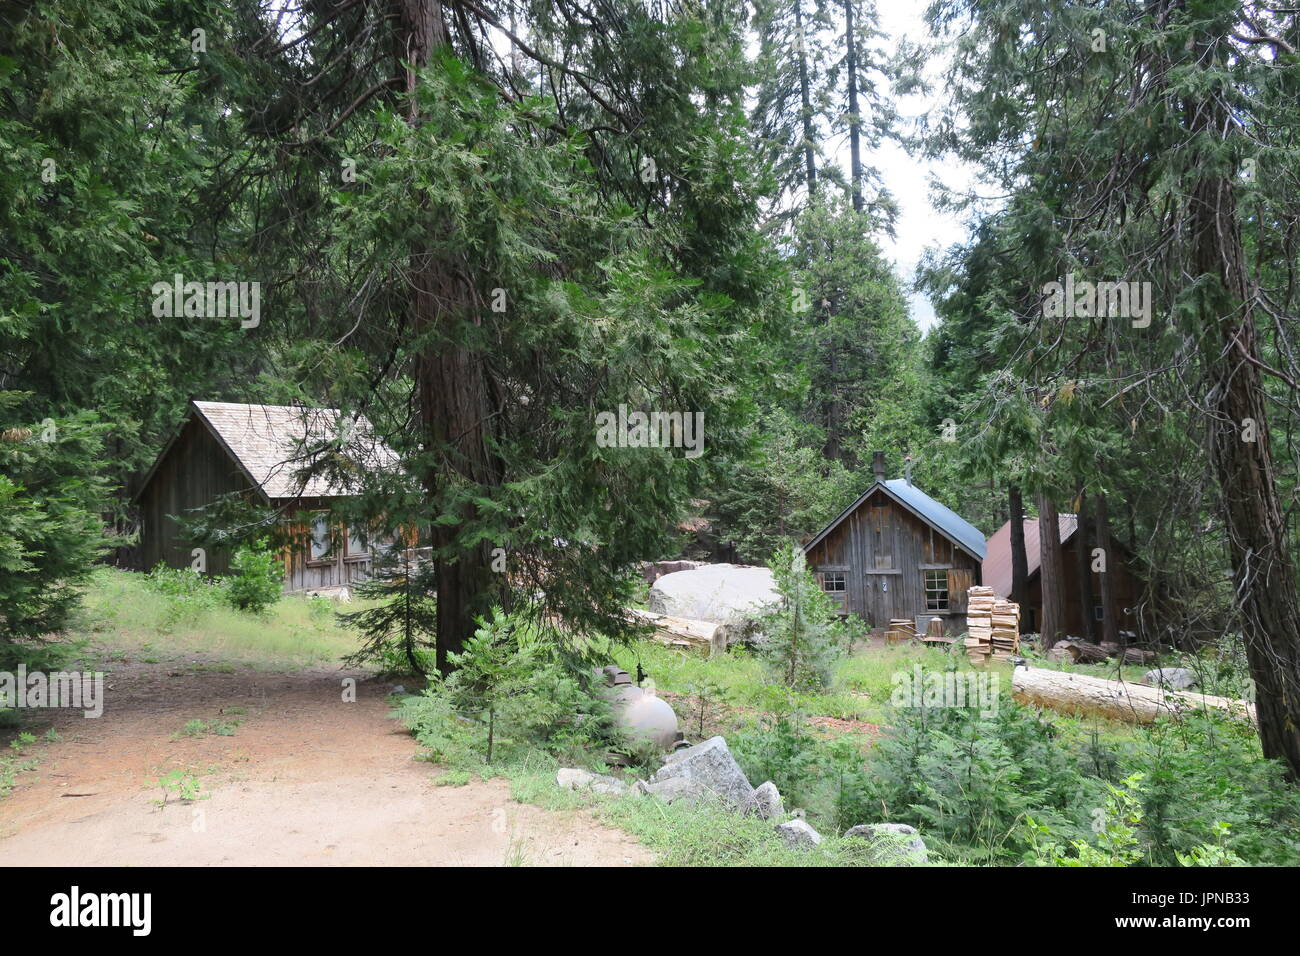 name in frankly princess park perfectly frog parks magical are trees sight king gentle the them cabins national these love s kings blog it as first sequoia giants to often at canyon referred and was that sequoias fits